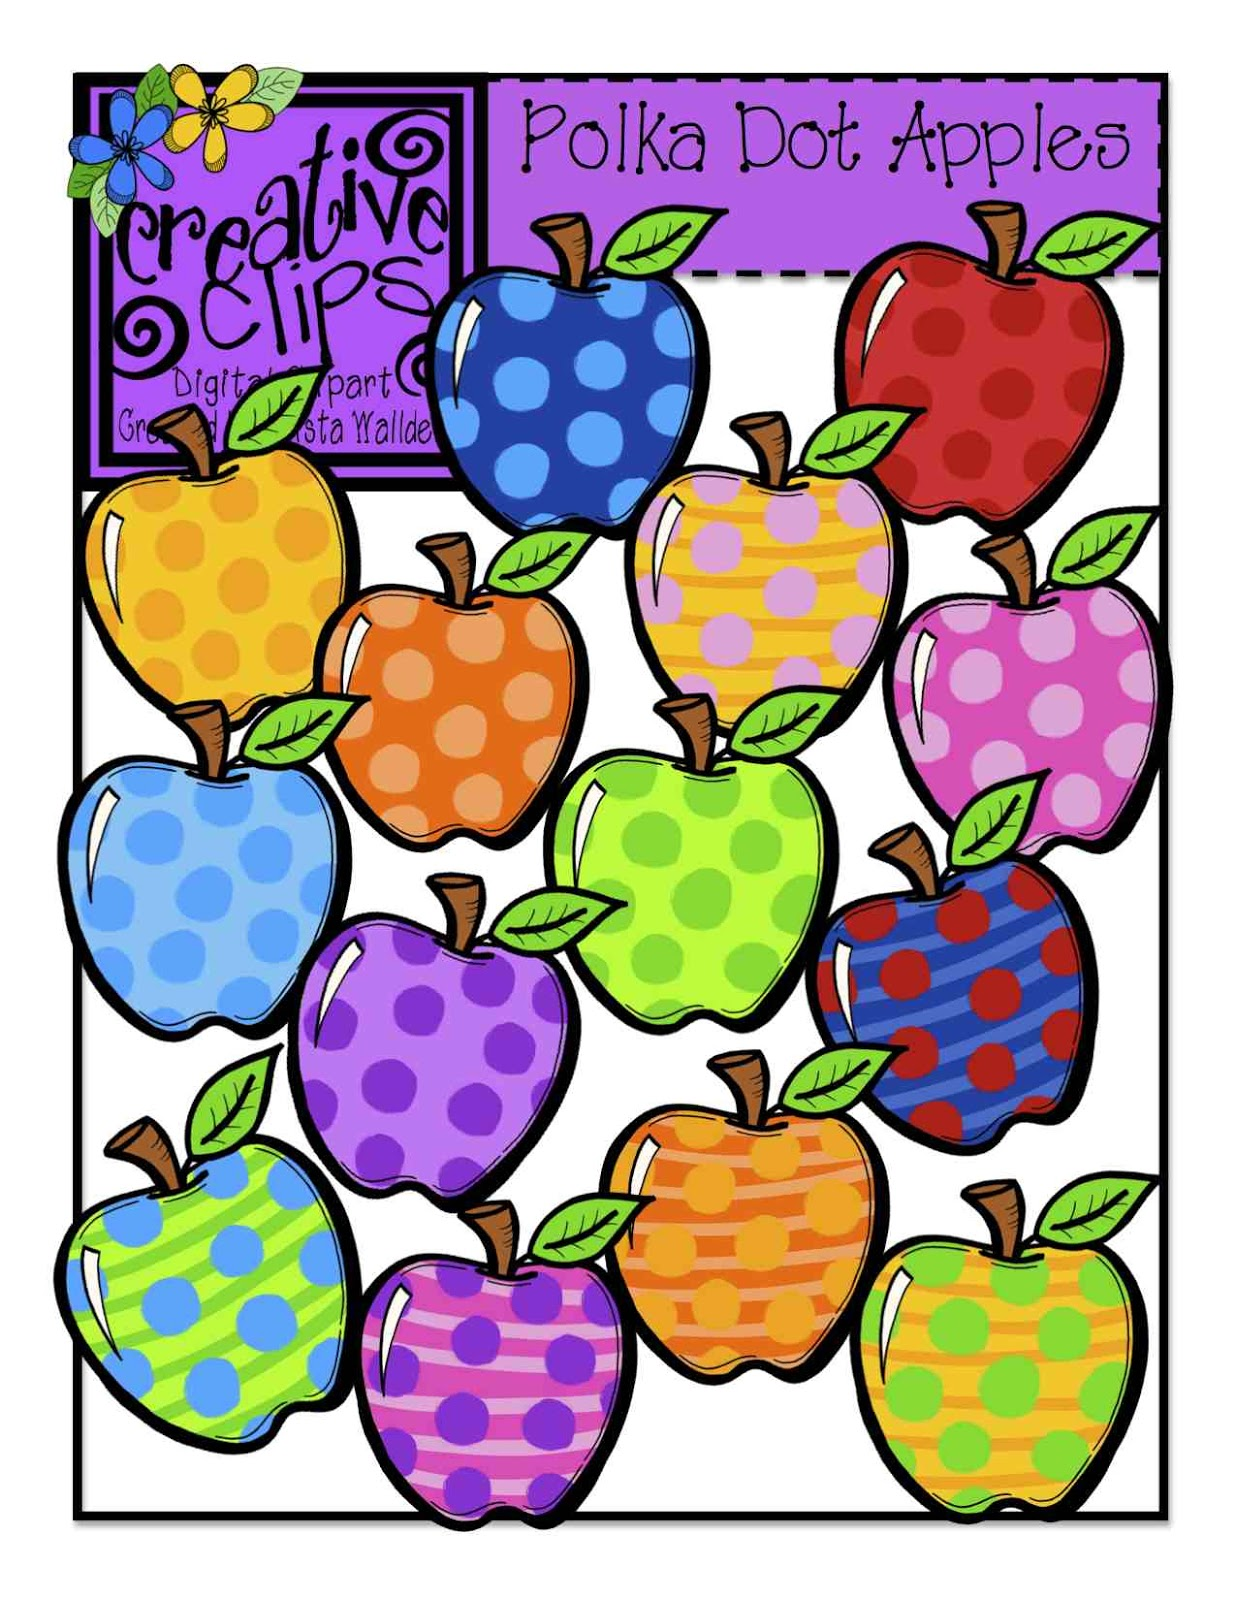 1236x1600 The Creative Chalkboard Free Rainbow Apples And New Clipart Sets